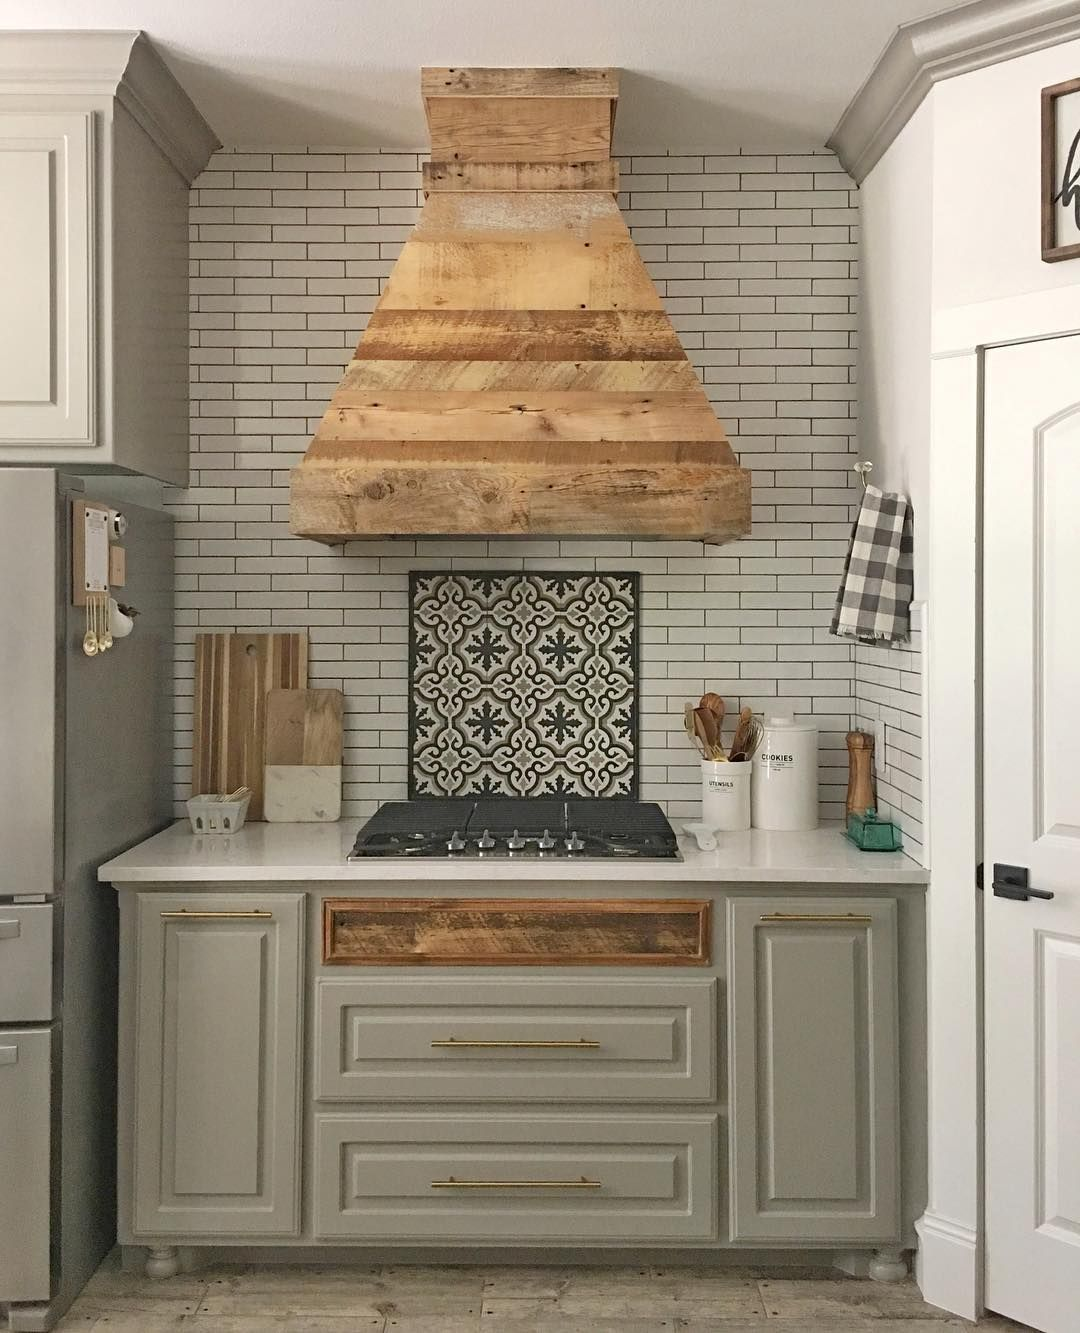 Wood Range Hoods: One Of My Favorite Builds Yet... ️ #shanty2chic #kitchen